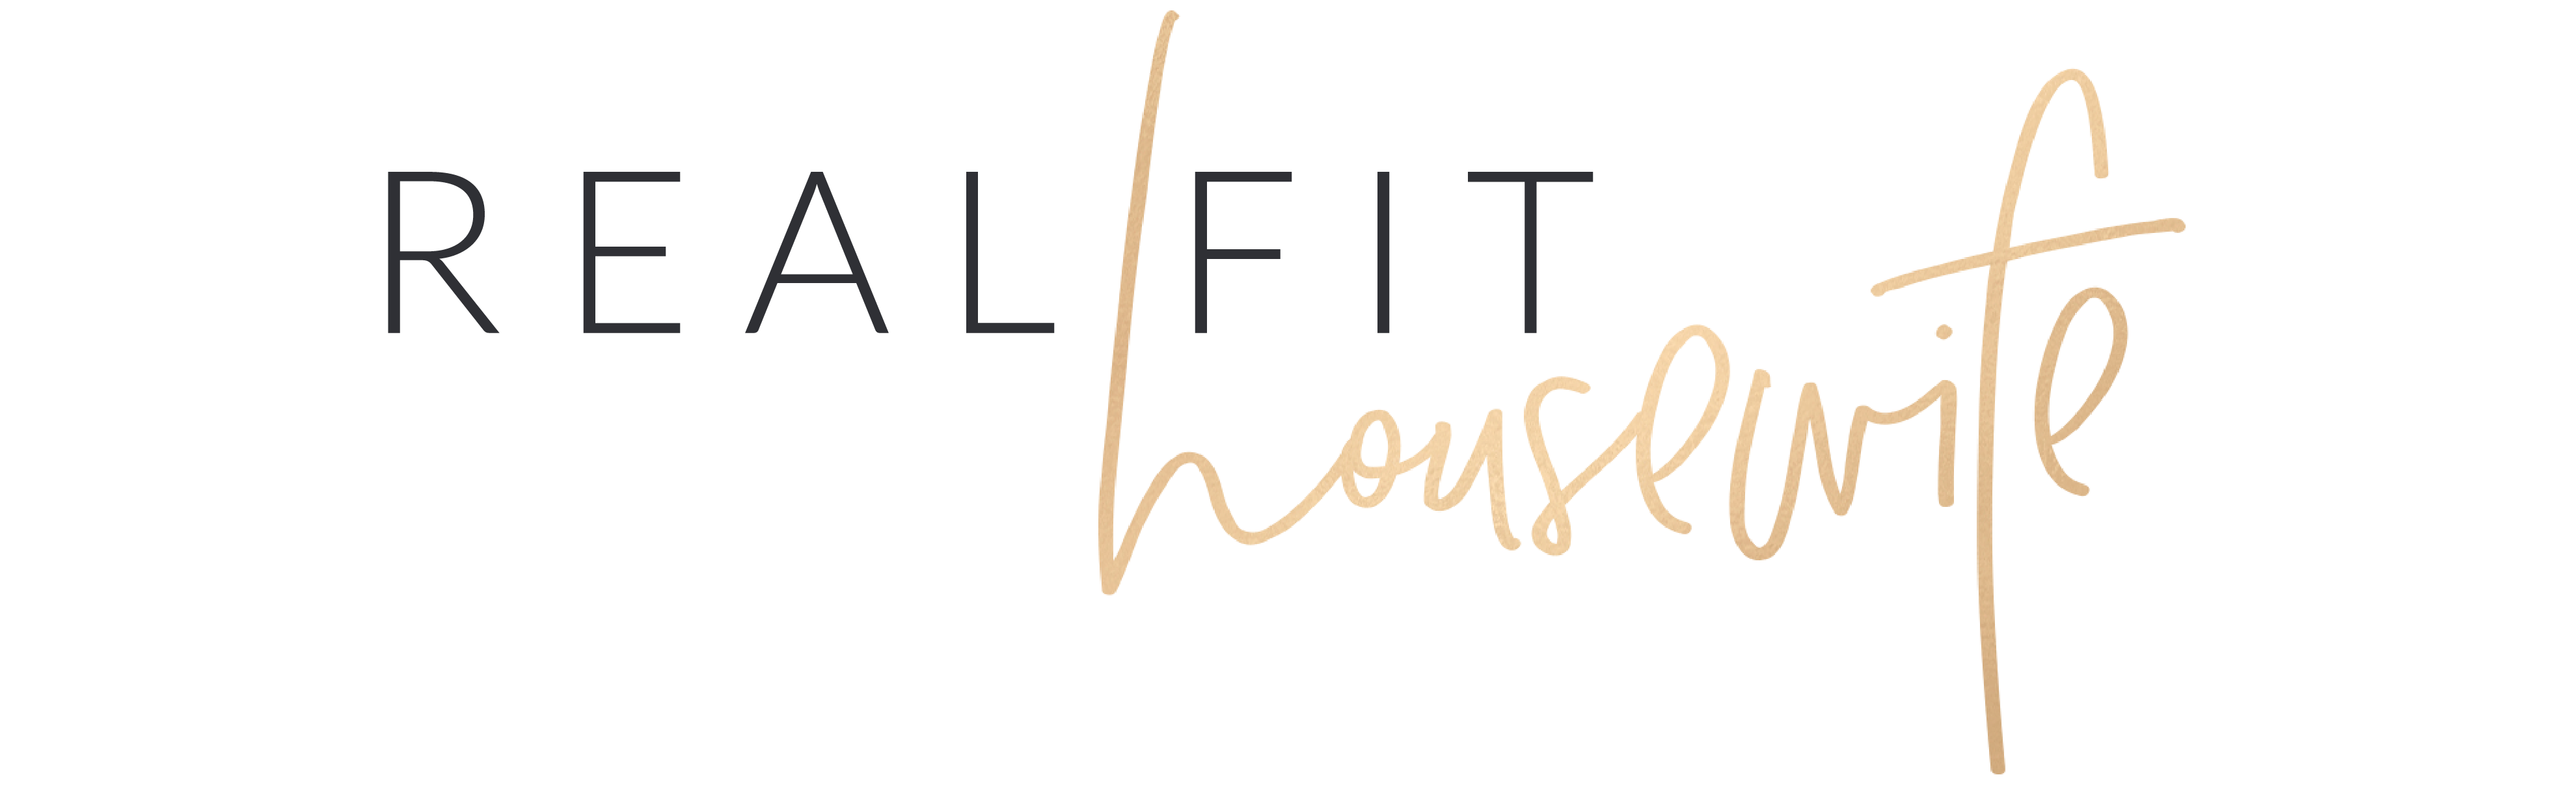 Real Fit Housewife